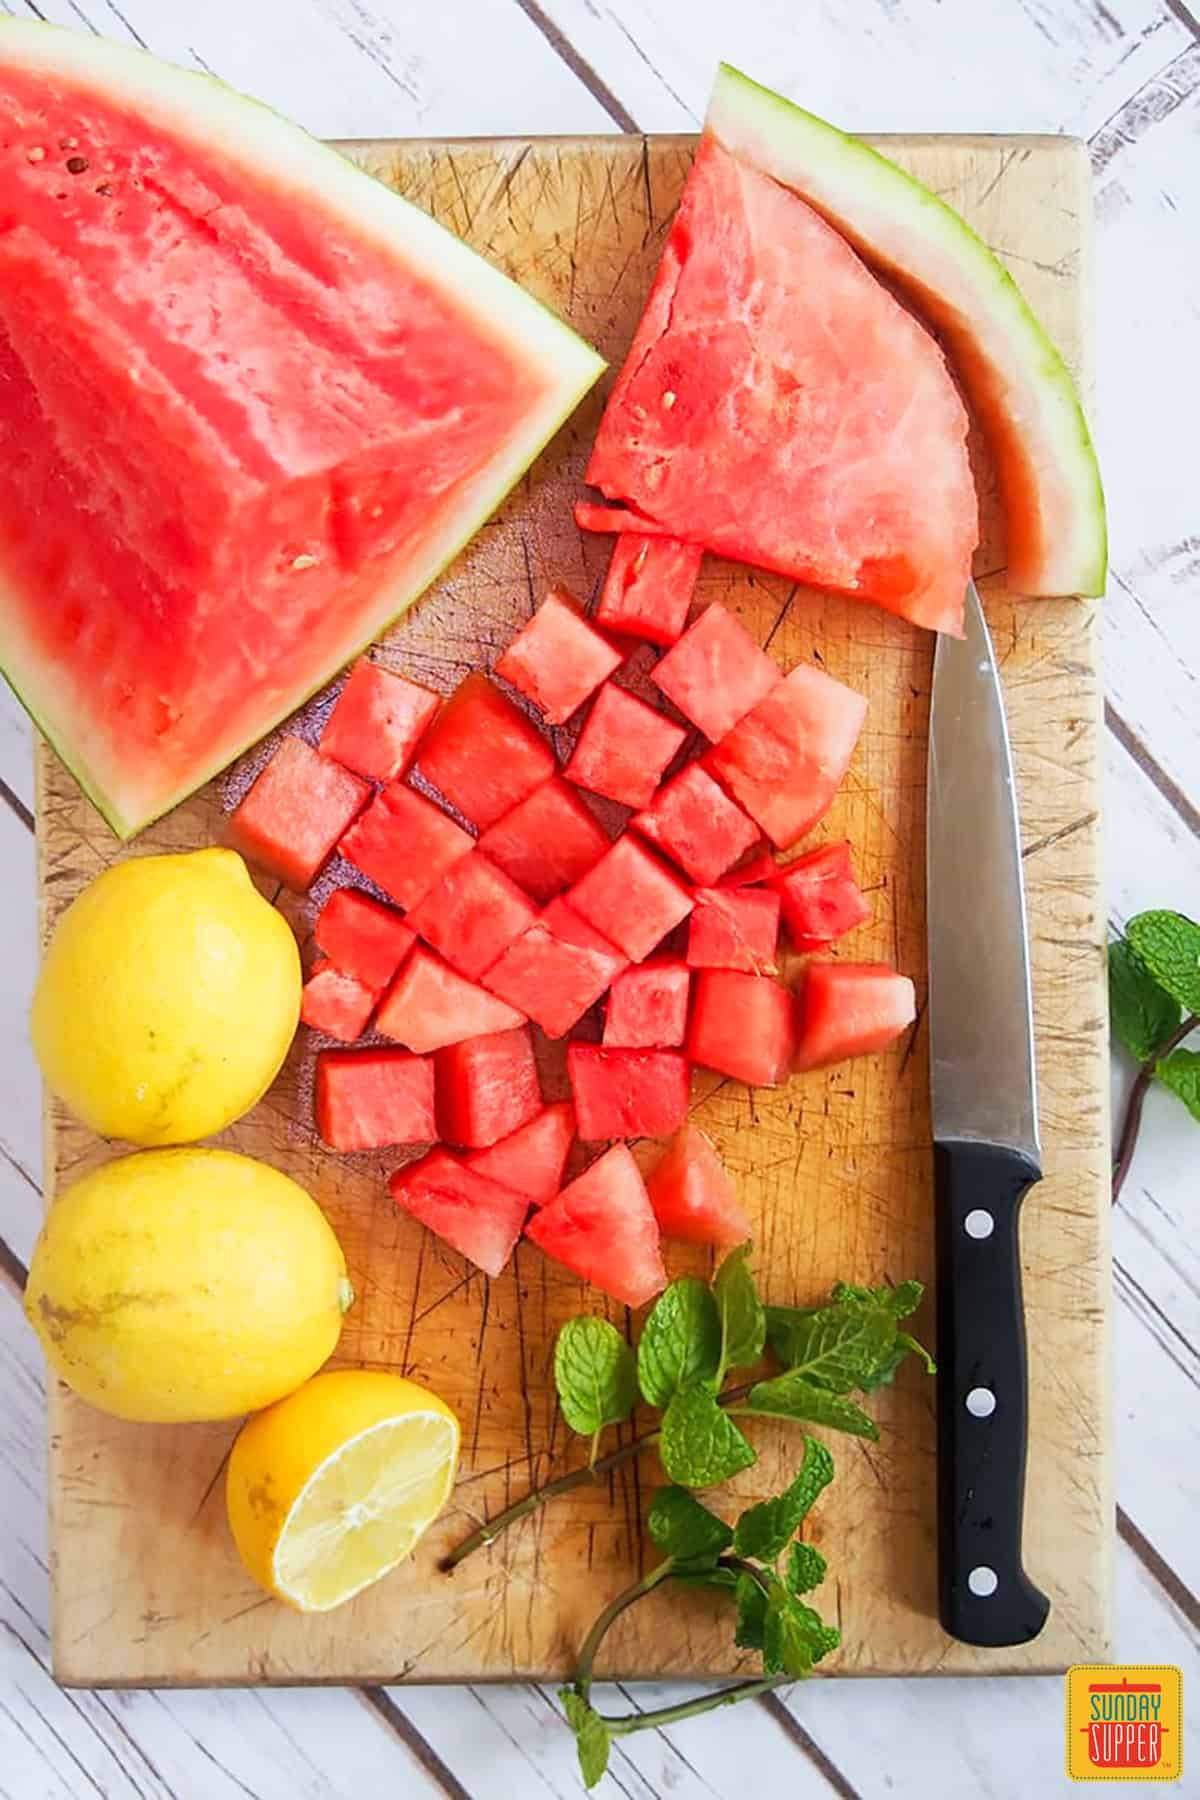 Ingredients for homemade lemonade on a cutting board with a paring knife